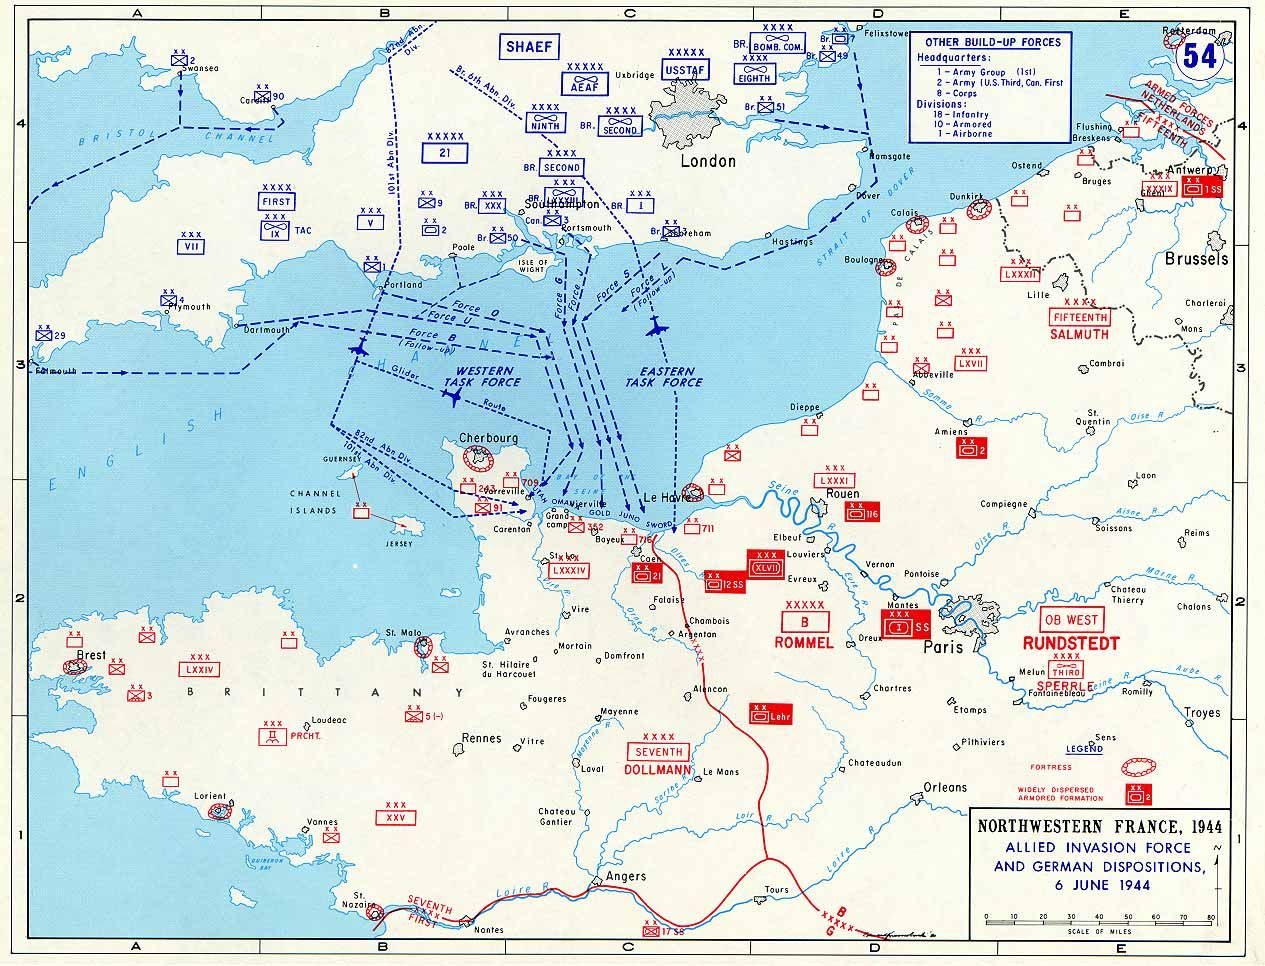 The map below gives the order of battle for the Allies and the